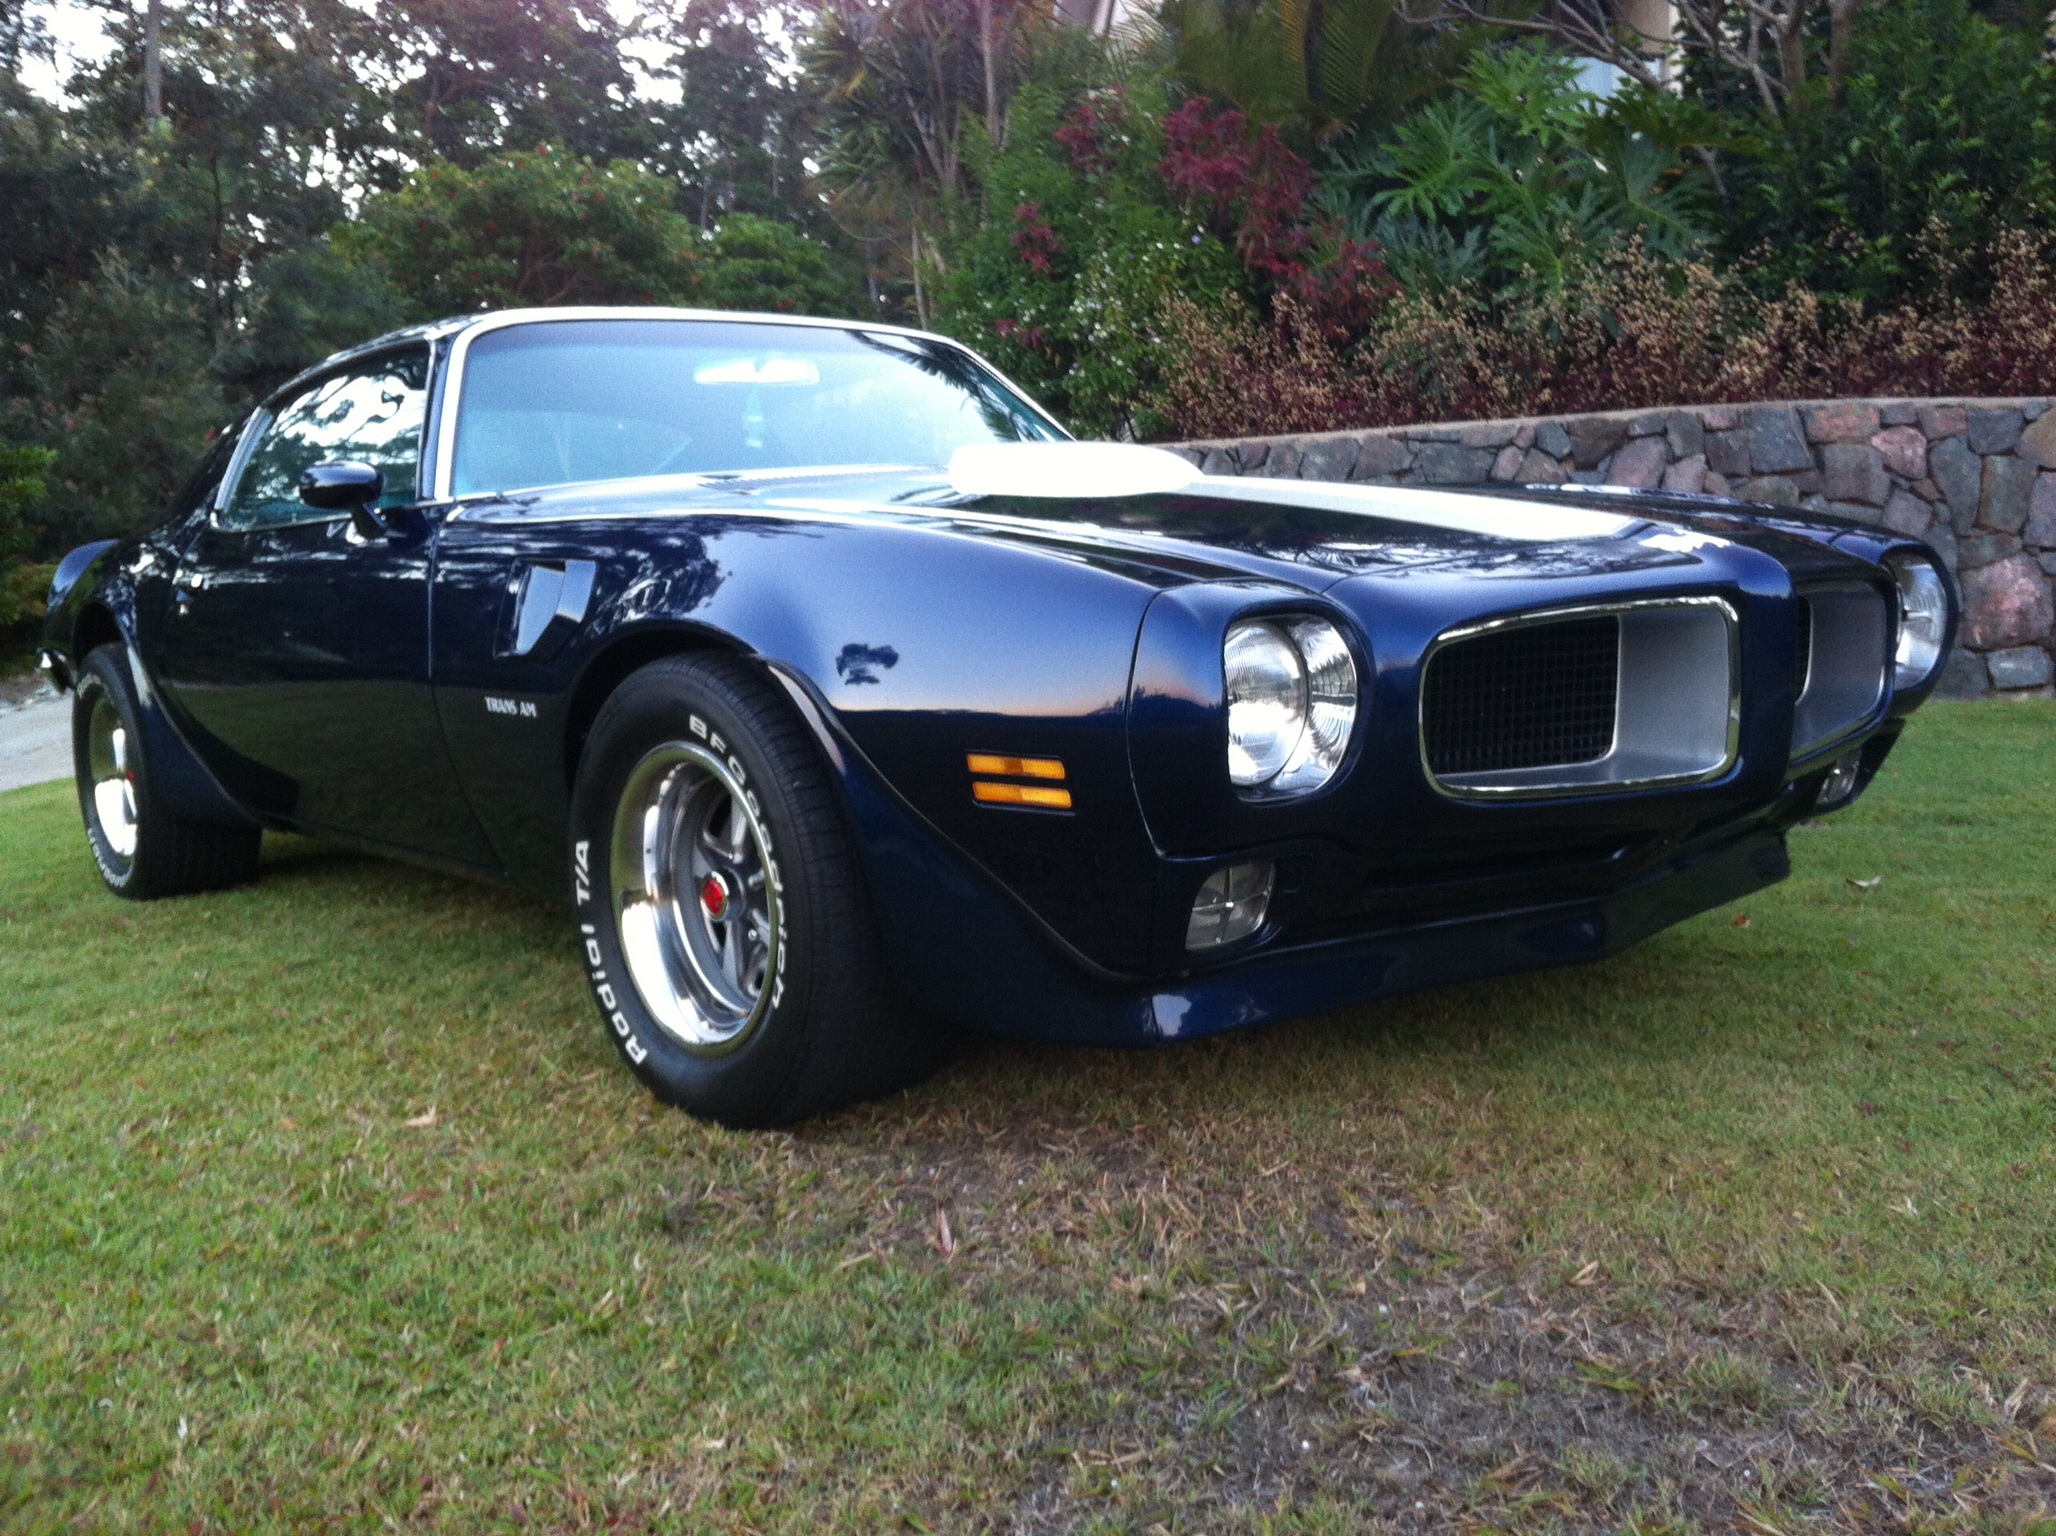 Classic Pontiac Trans Am 1970 Original Star Cars Agency